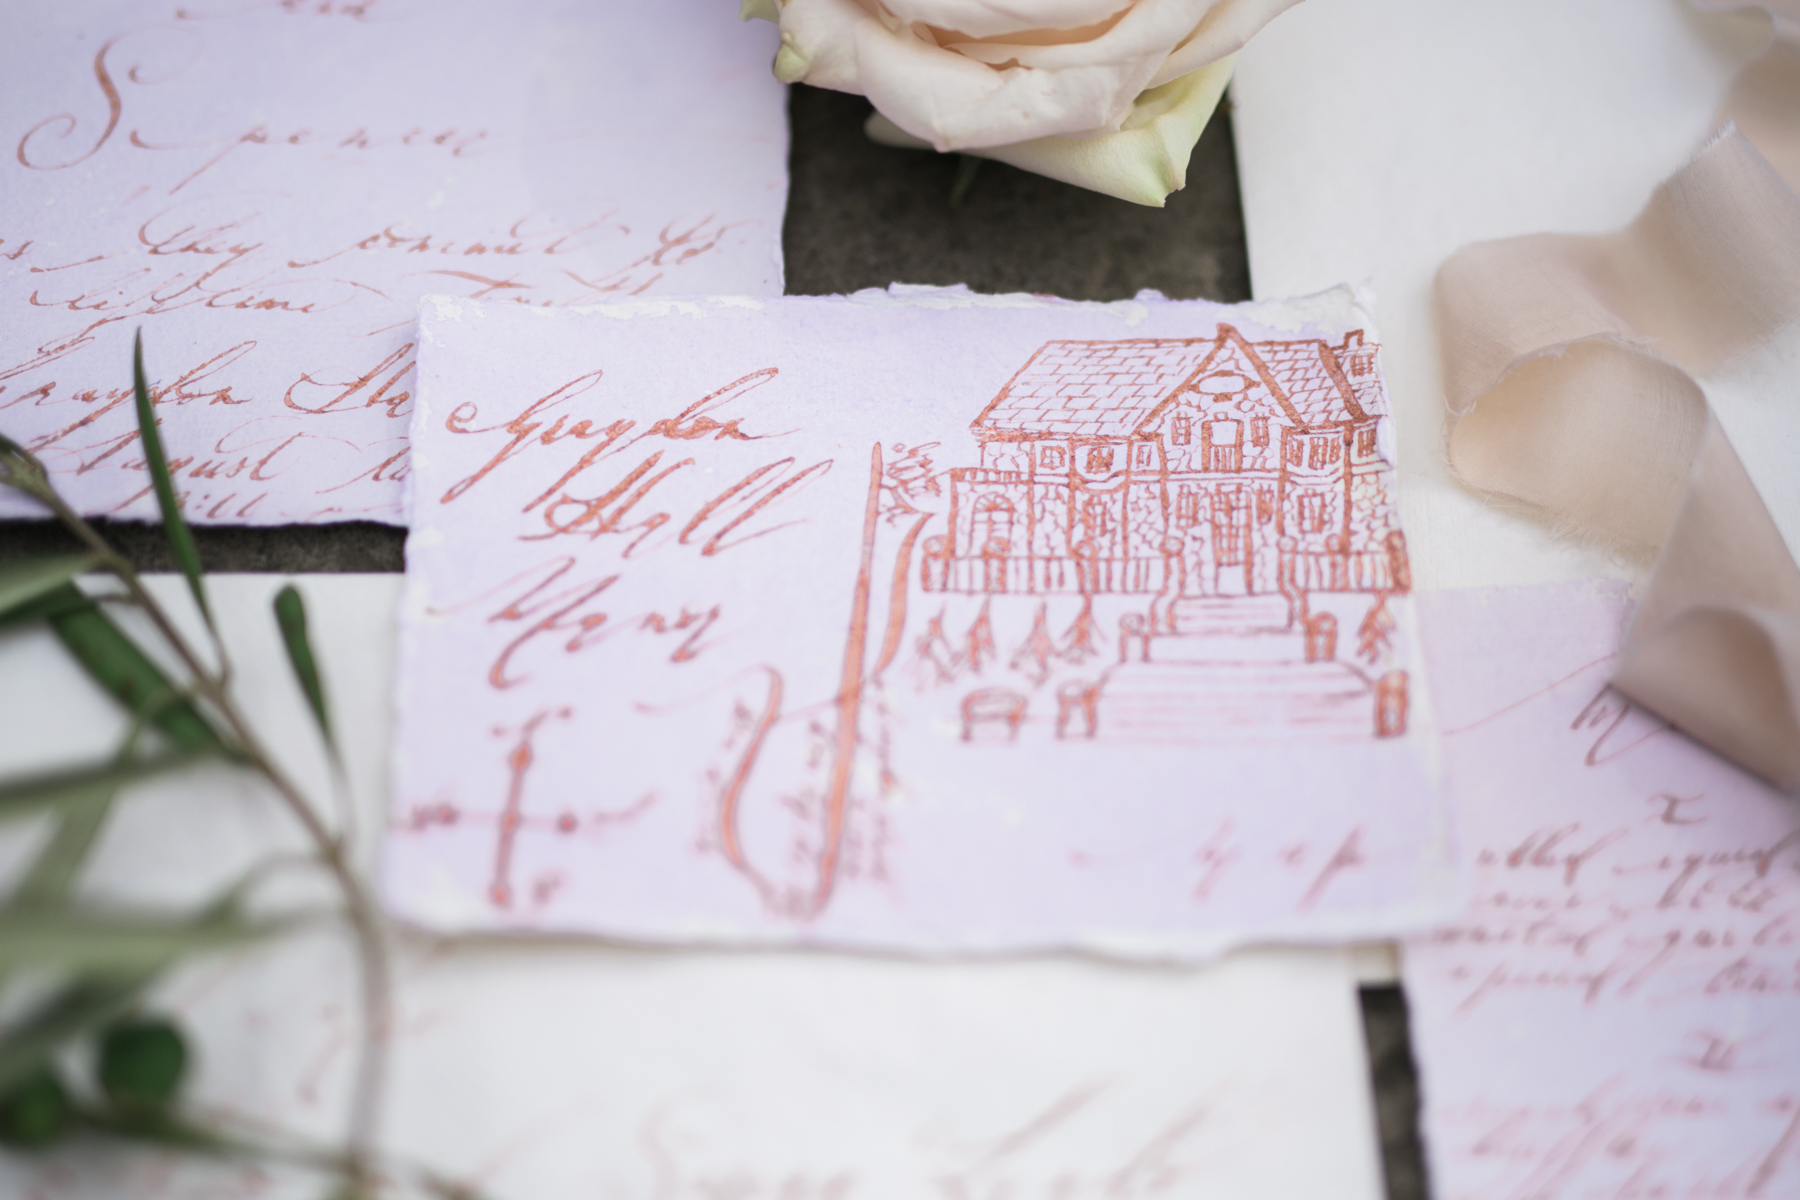 August In Bloom - Lavender watercolour invitations with rose gold calligraphy and vintage stamps - Fairytale Wedding (Wedluxe)